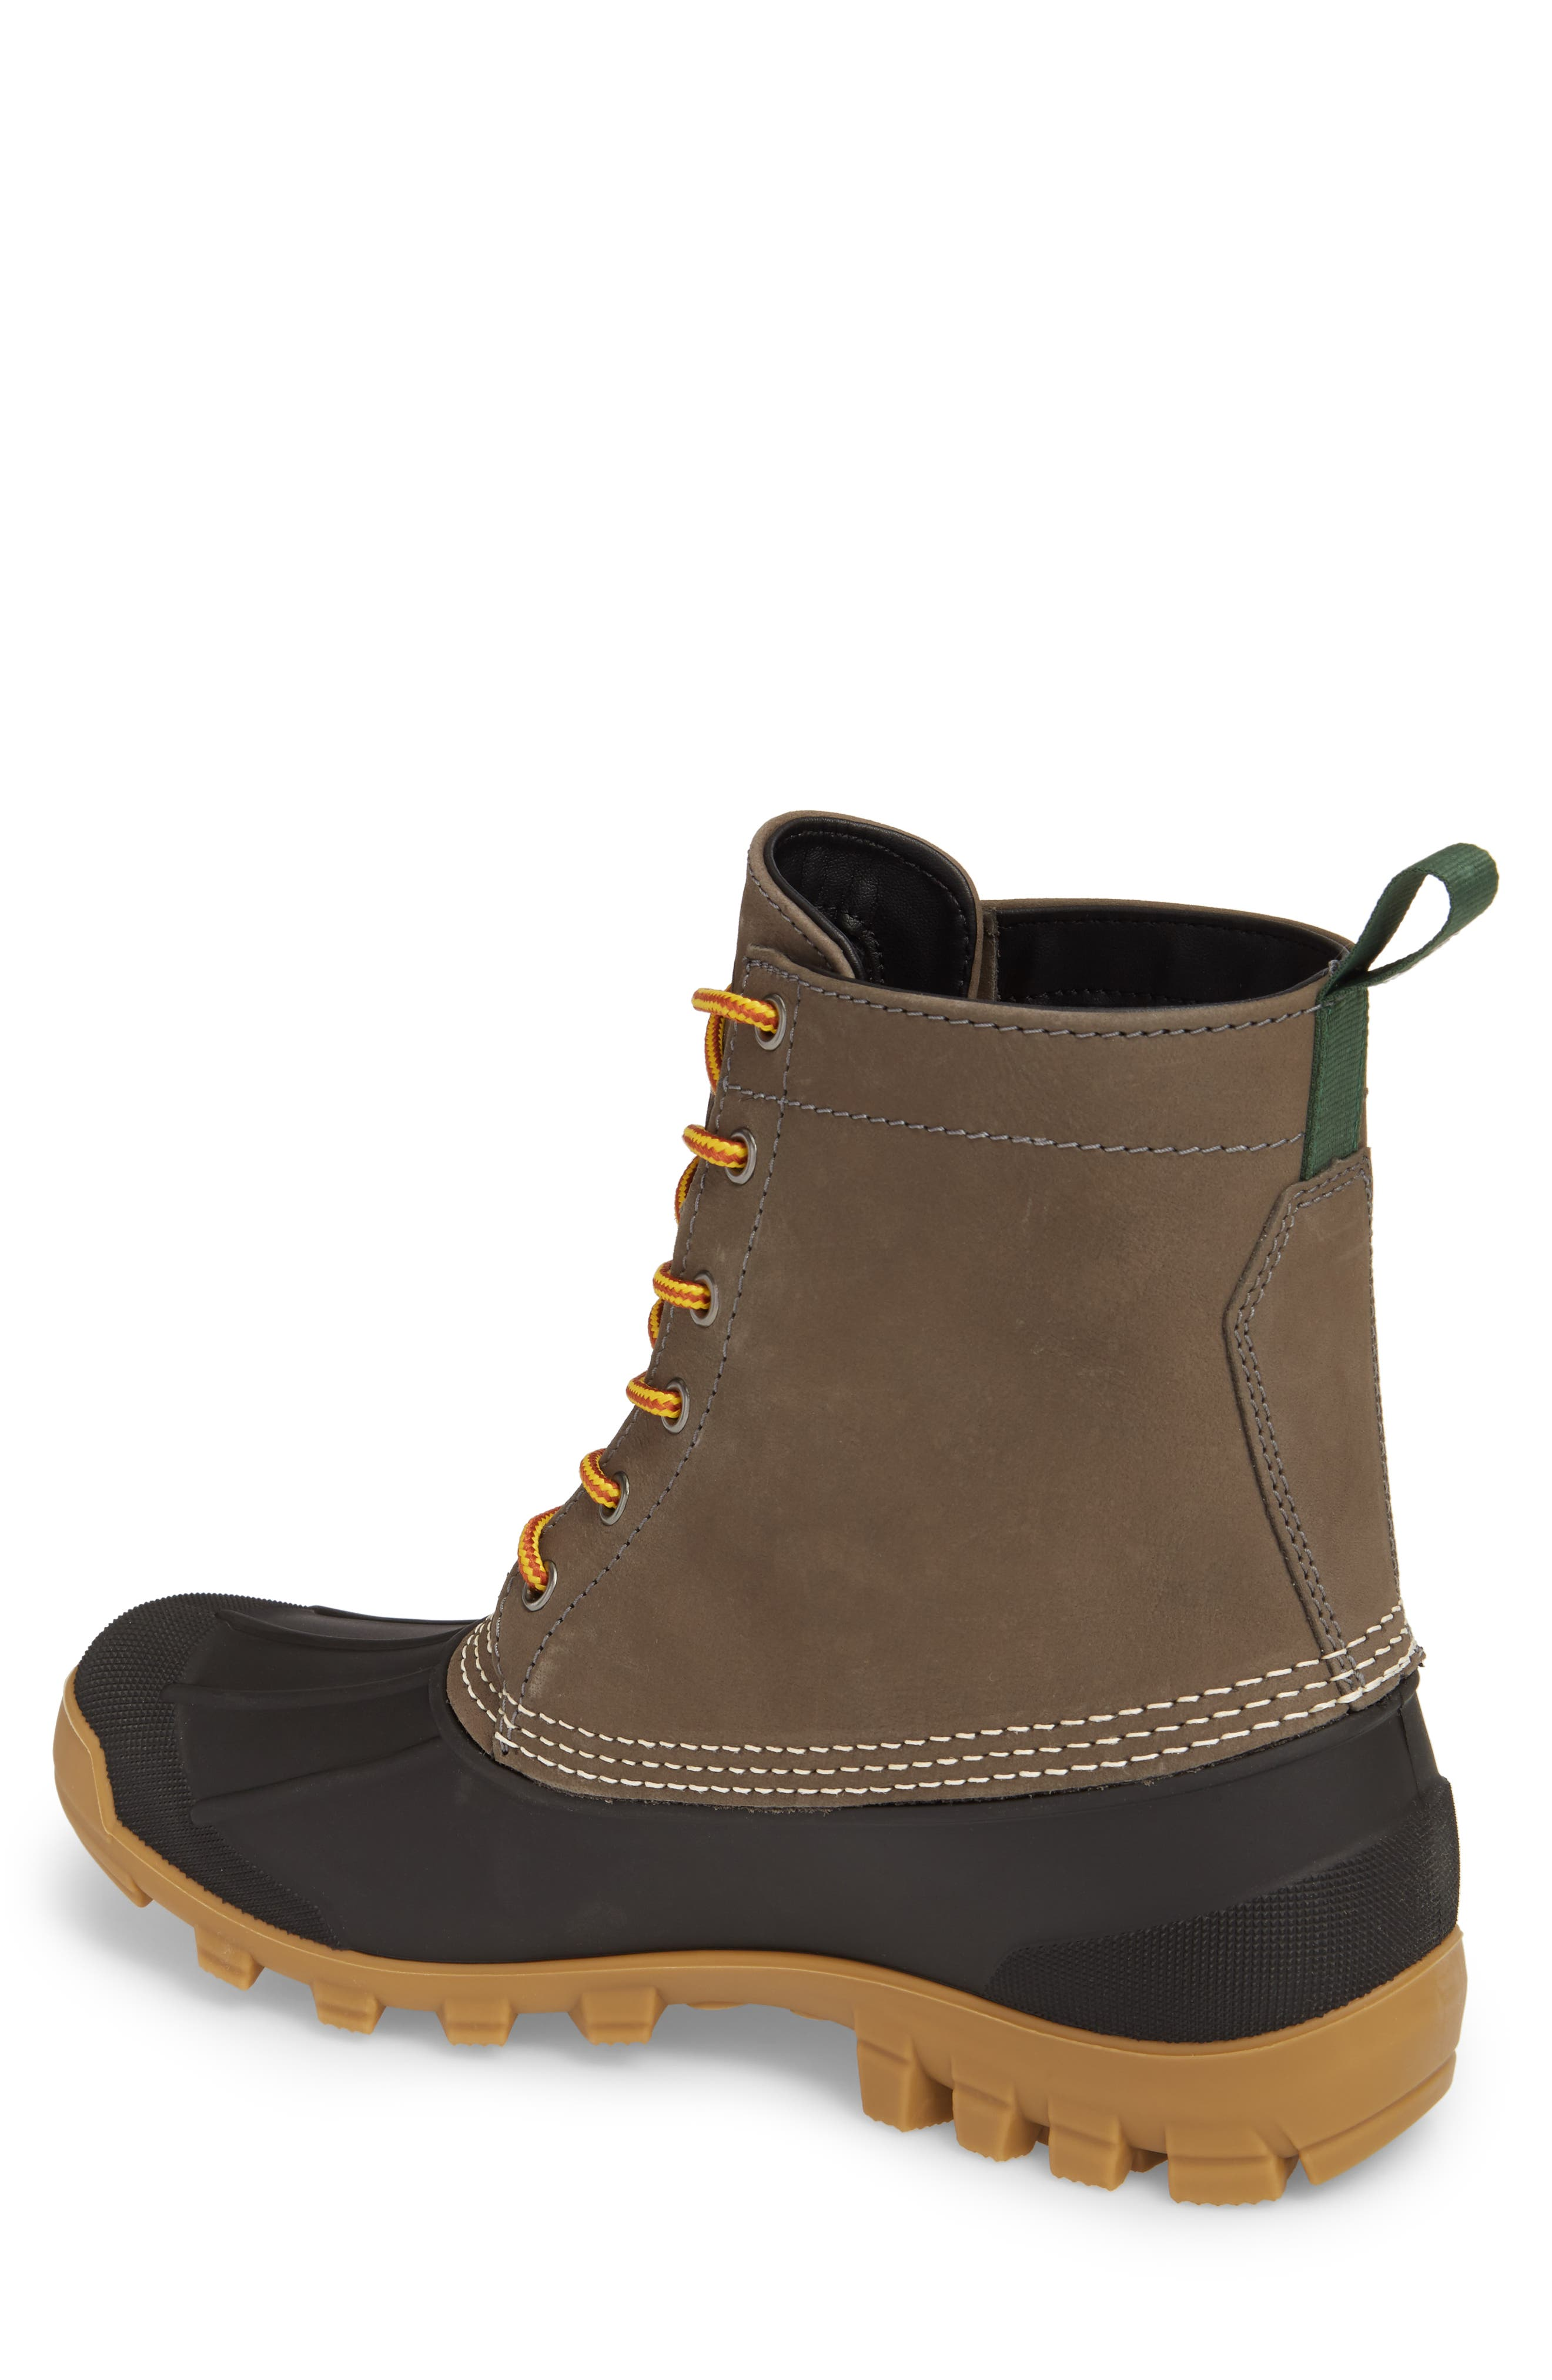 Yukon 6 Waterproof Insulated Three-Season Boot,                             Alternate thumbnail 2, color,                             CHARCOAL LEATHER